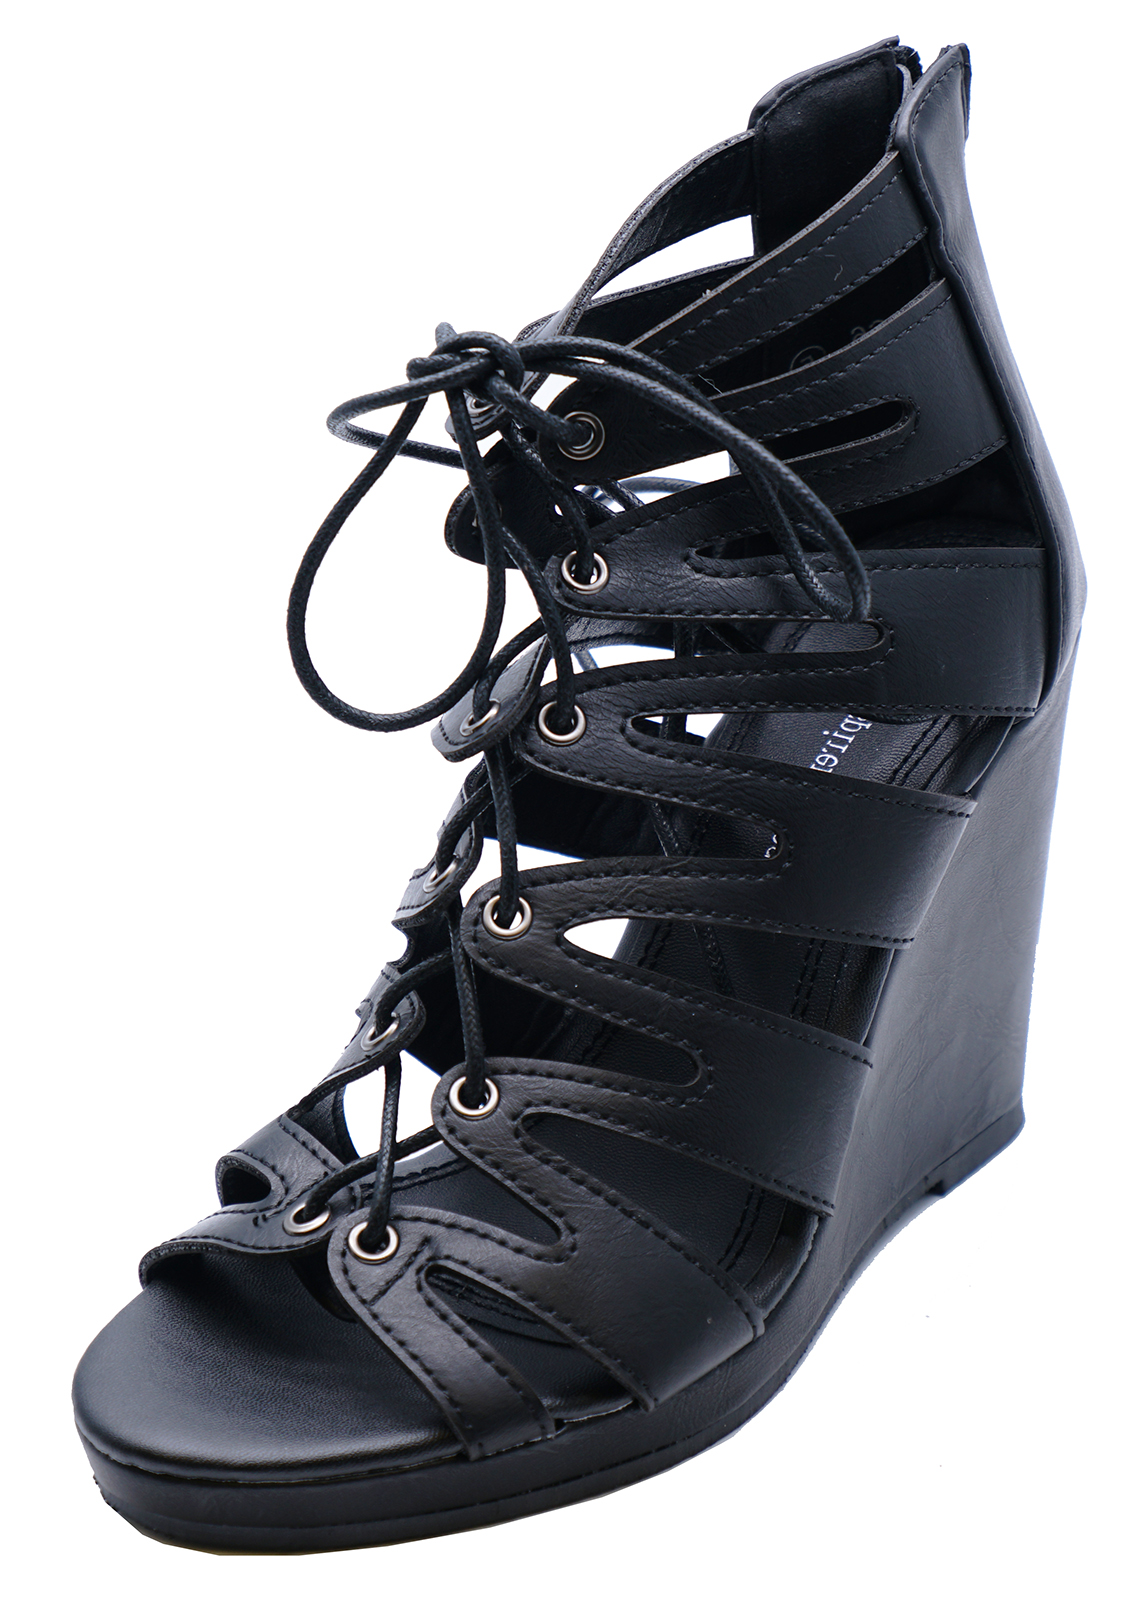 Sentinel WOMENS BLACK LACE-UP SUMMER STRAPPY WEDGES SANDALS OPEN-TOE SHOES  SIZES 3- b047f1d5f8